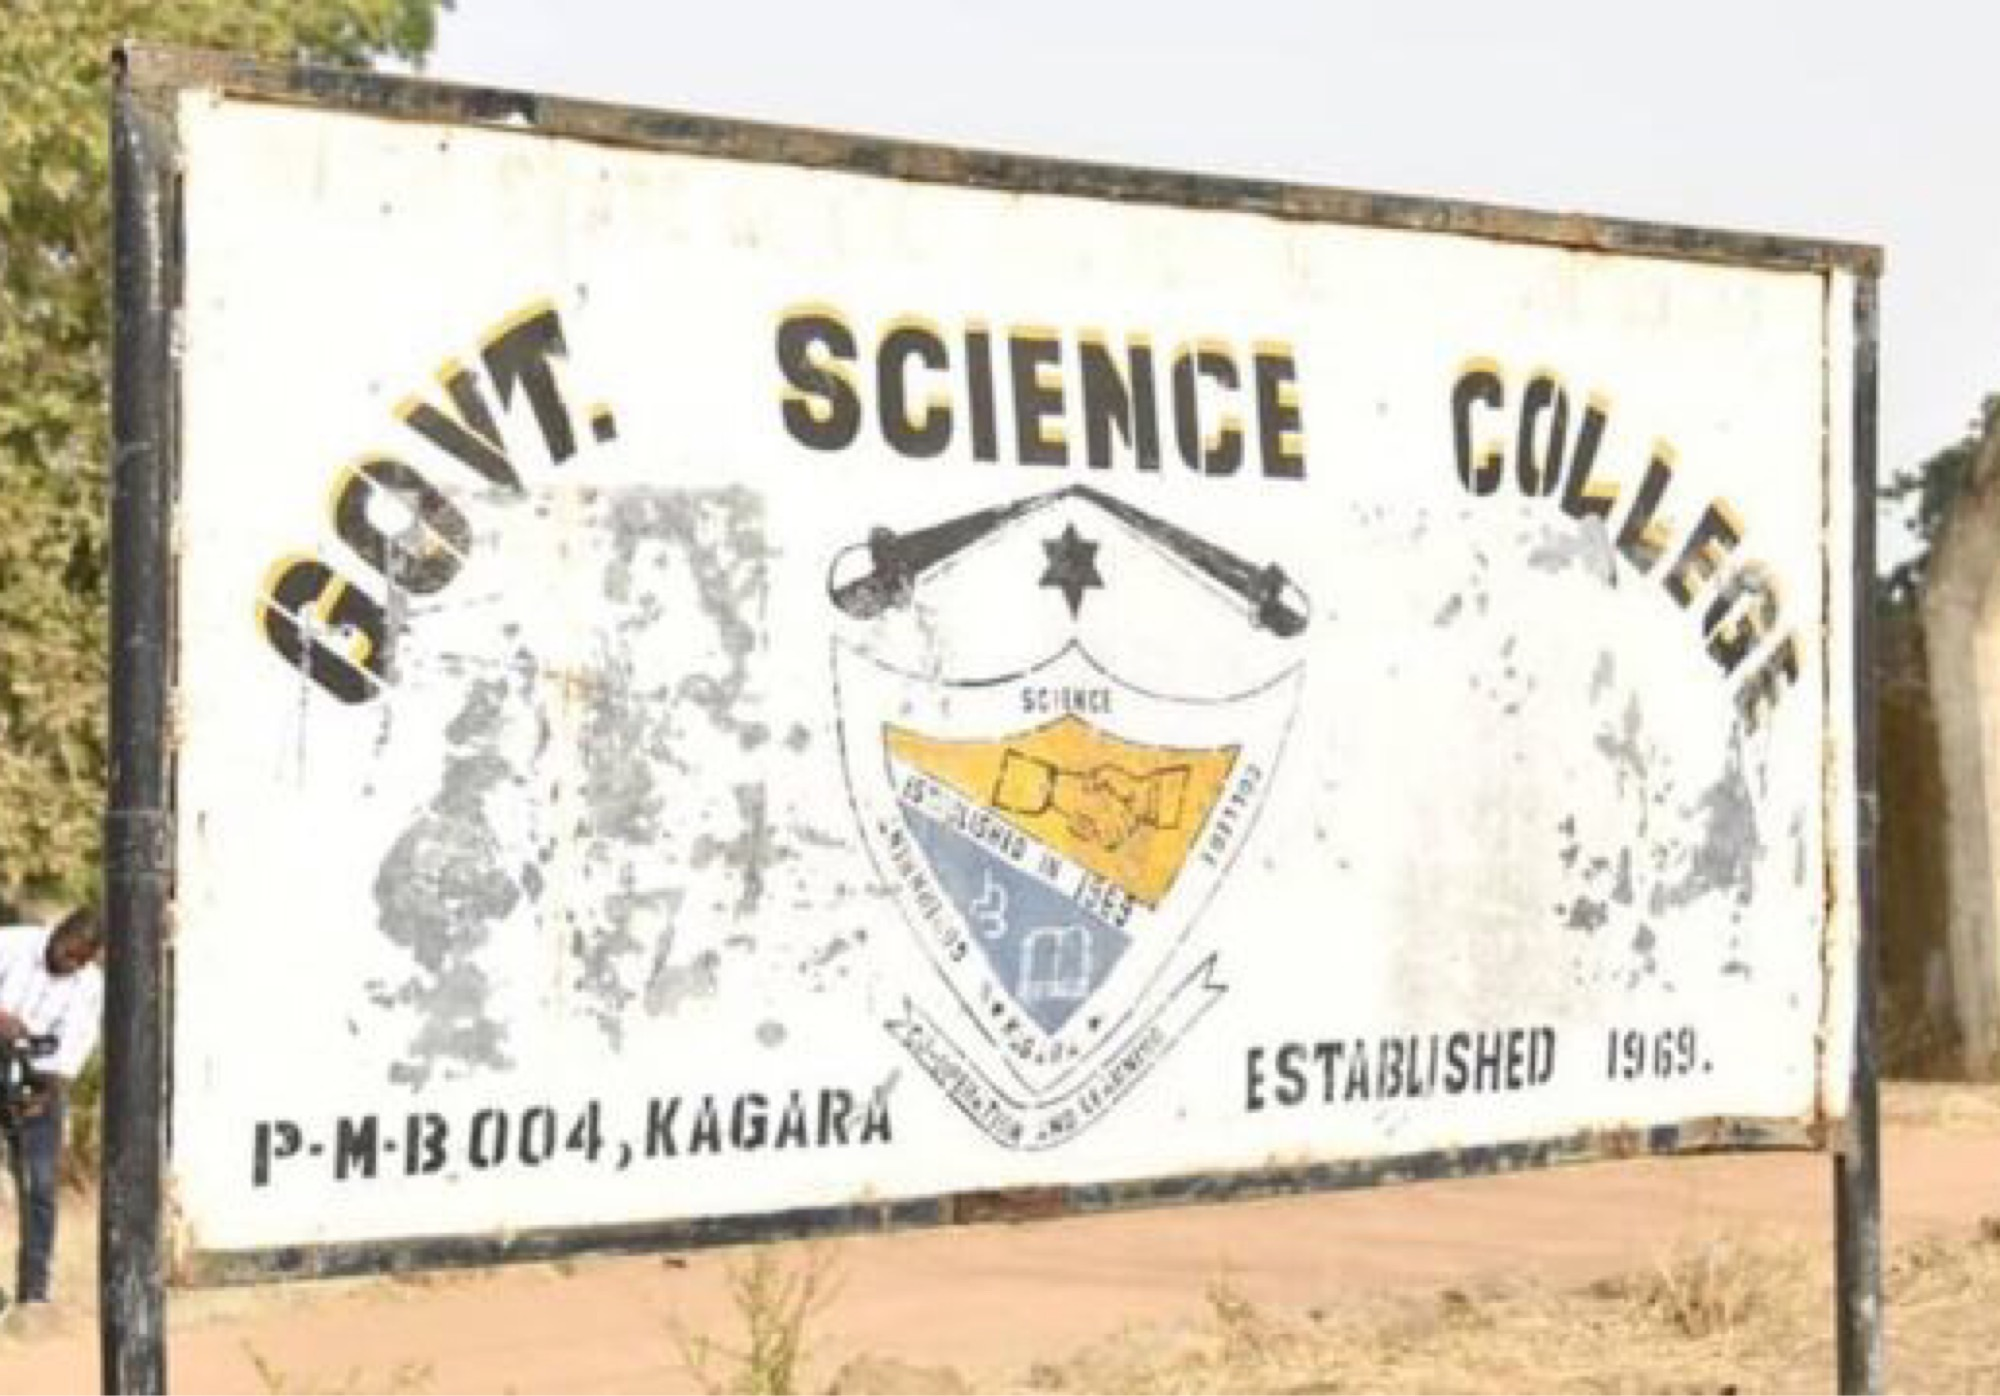 How Unknown Gunmen Kidnapped Students, Teachers In Nigeria